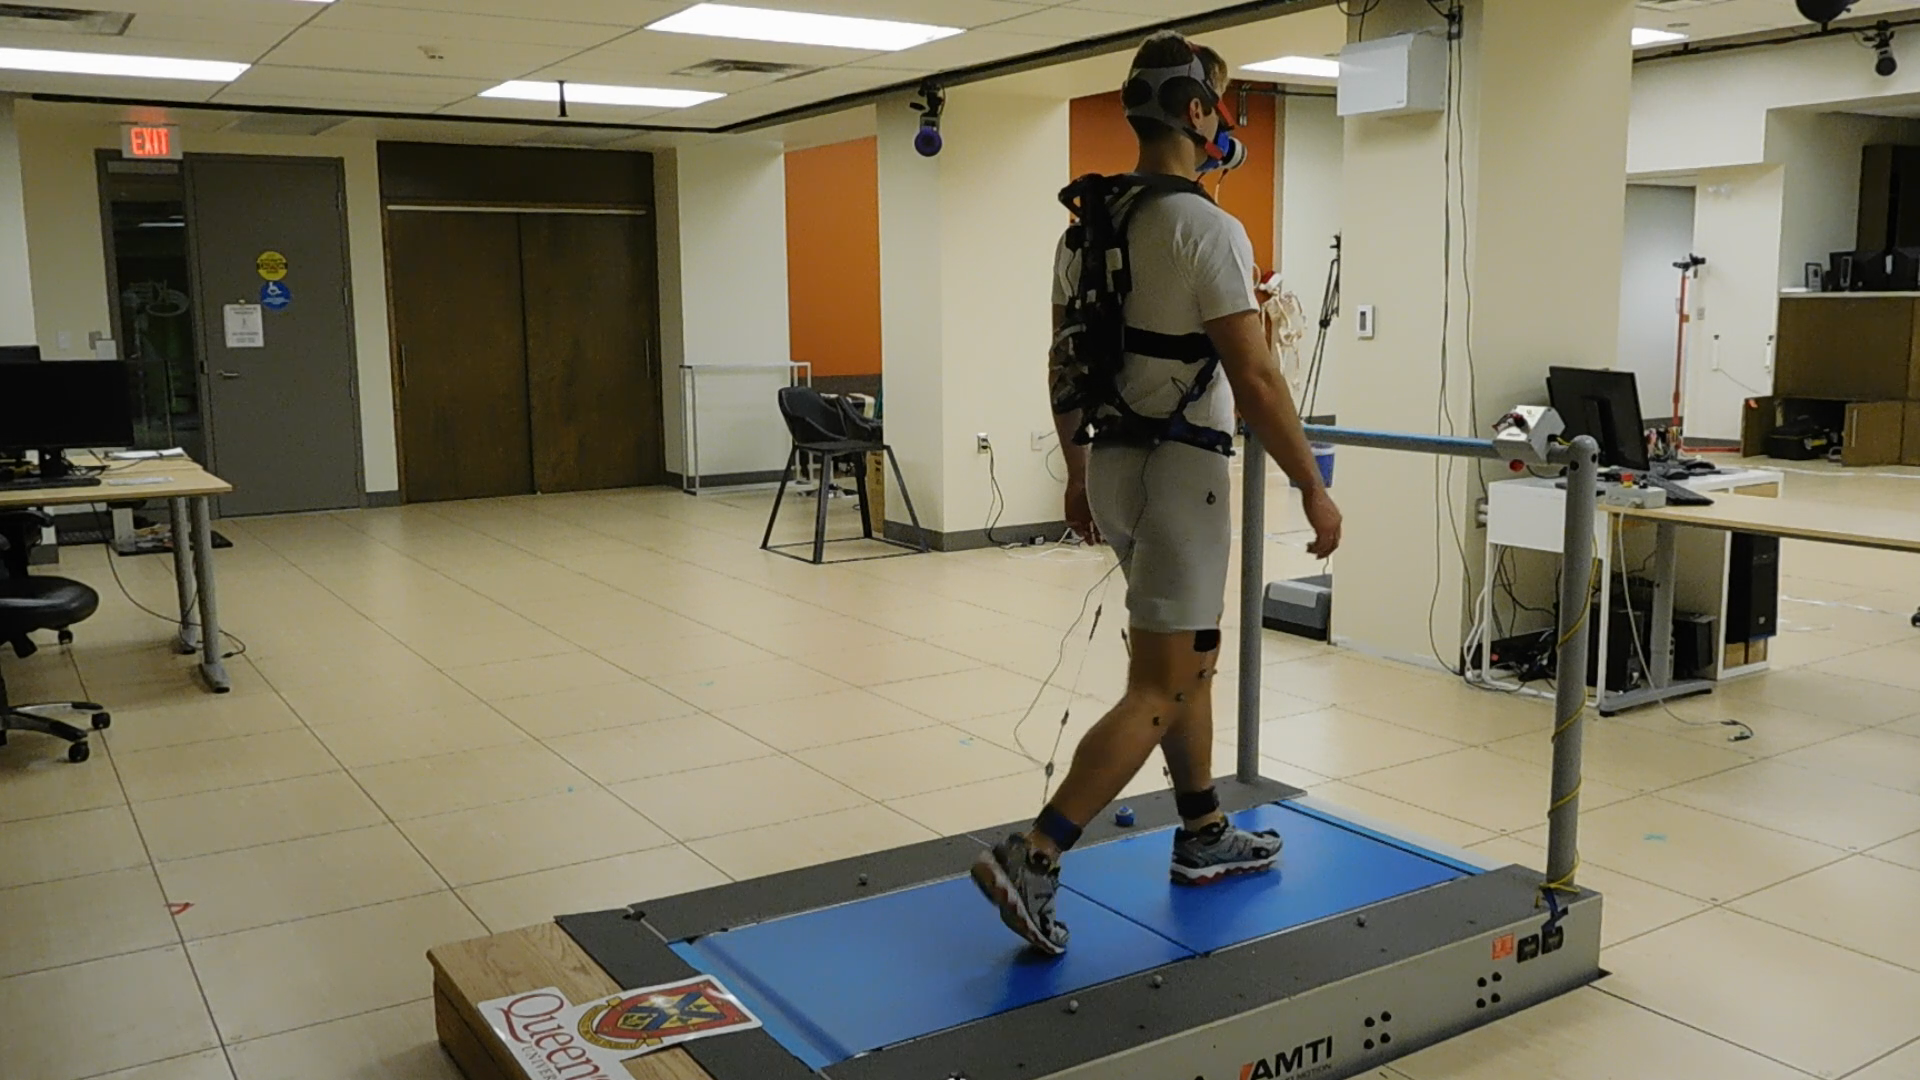 Queen's University researchers' device to make walking easier featured in journal 'Science'